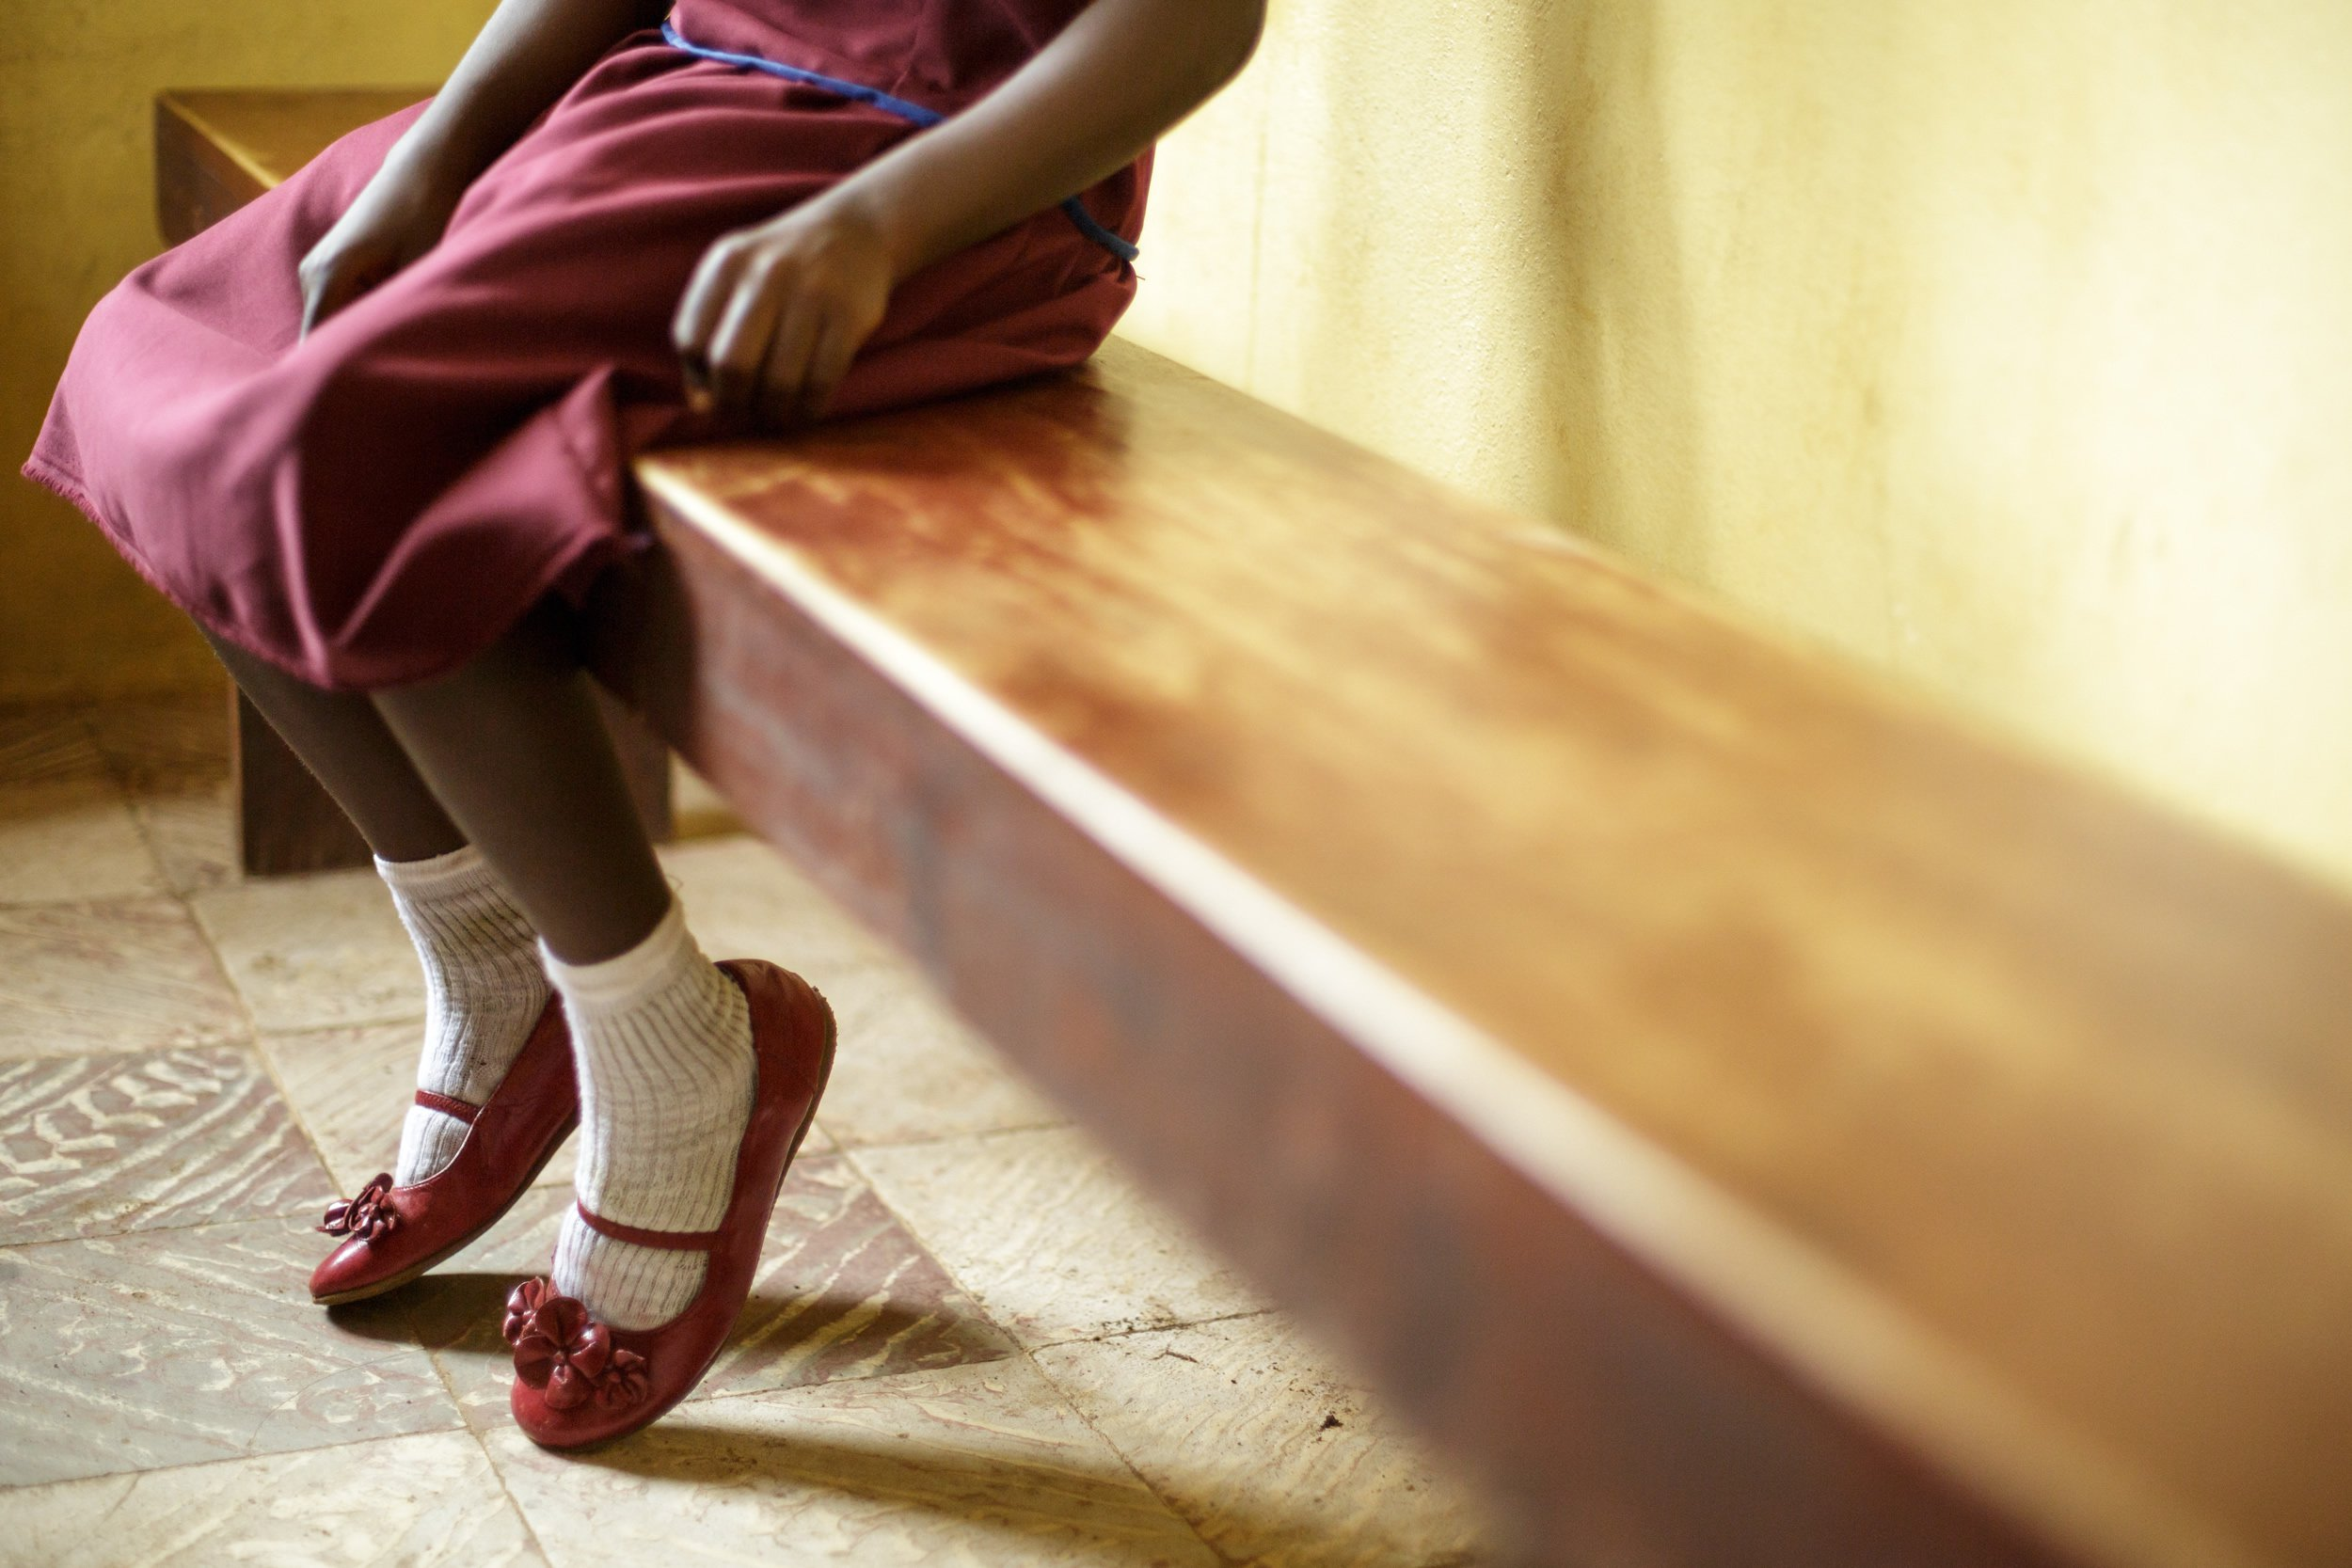 A young girl sits on a bench. Photo UNICEF/Olivier Asselin CC BY-SA 2.0